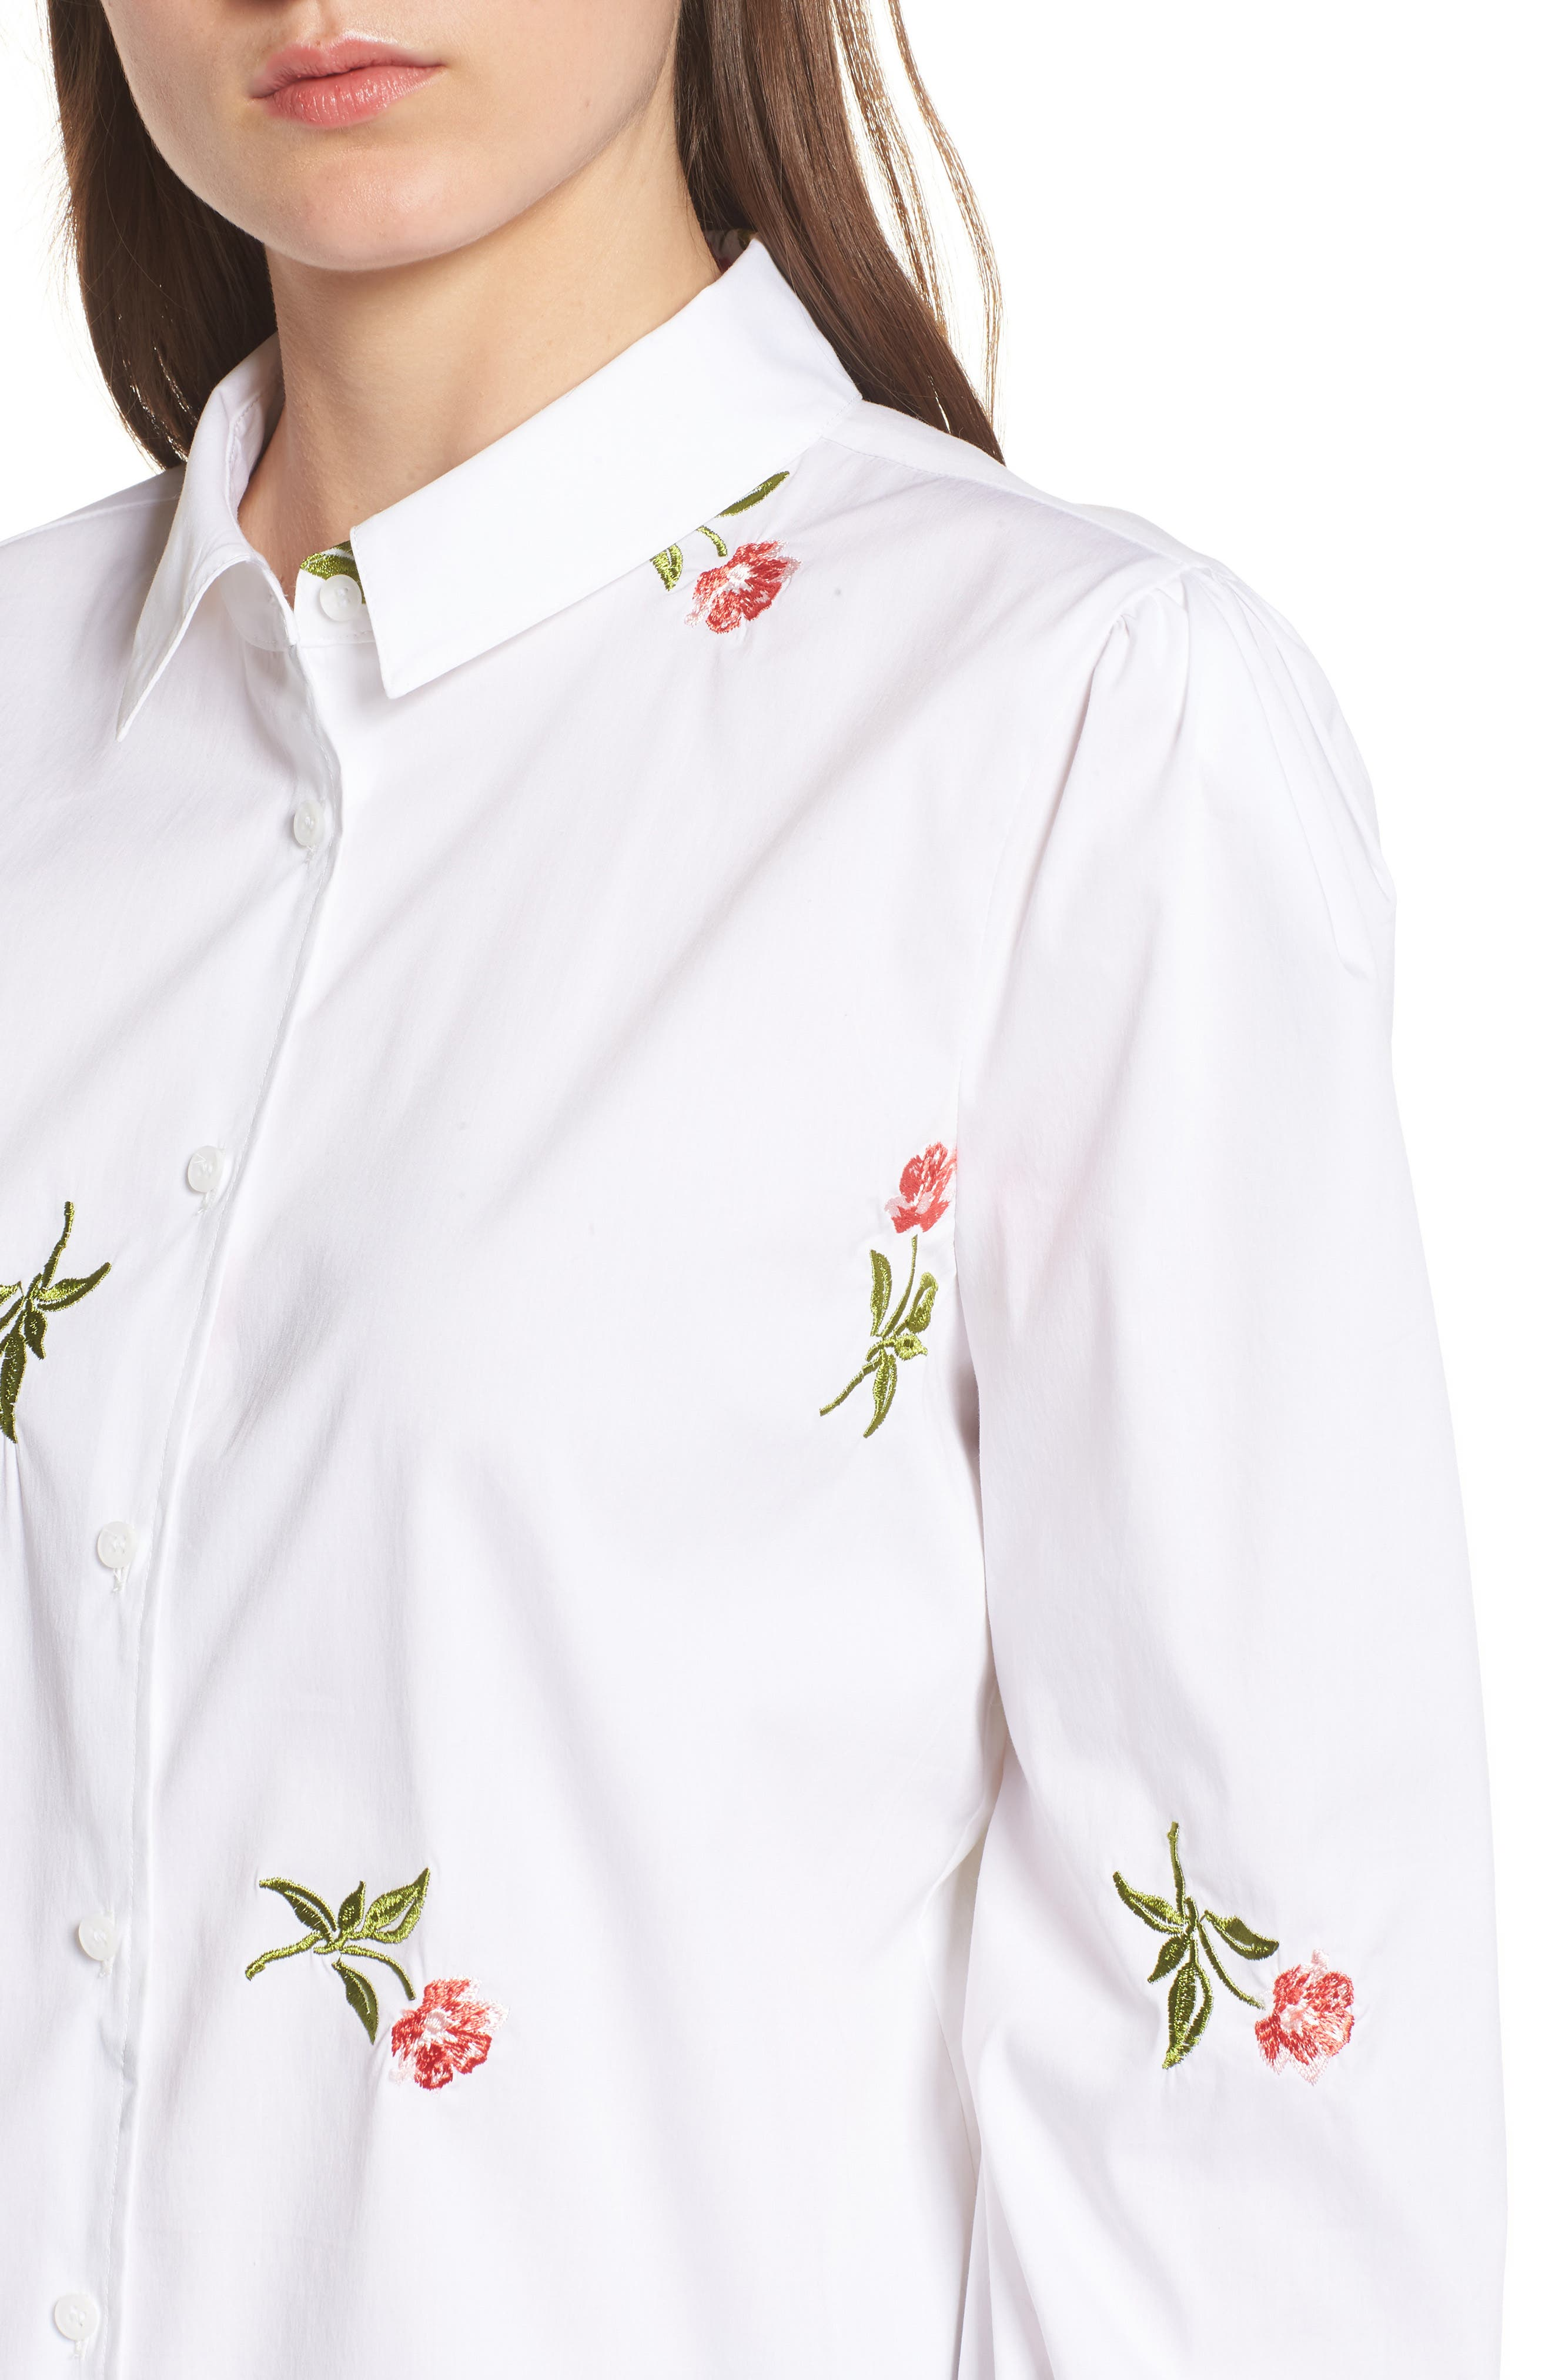 Embroidered Woven Shirt,                             Alternate thumbnail 4, color,                             White- Coral Bud Embroidery